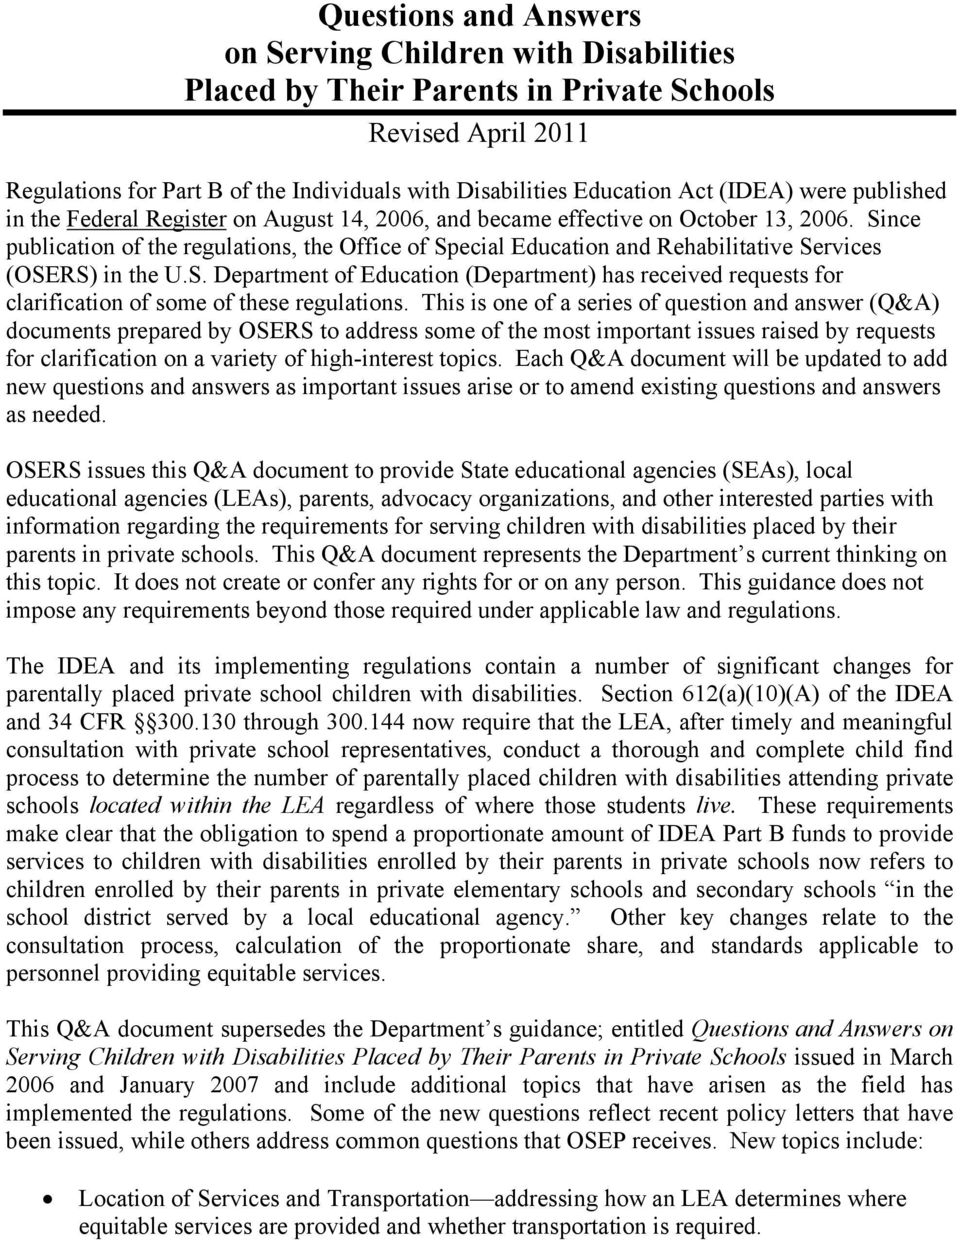 Osers Issues New Guidance Concerning >> Questions And Answers On Serving Children With Disabilities Placed